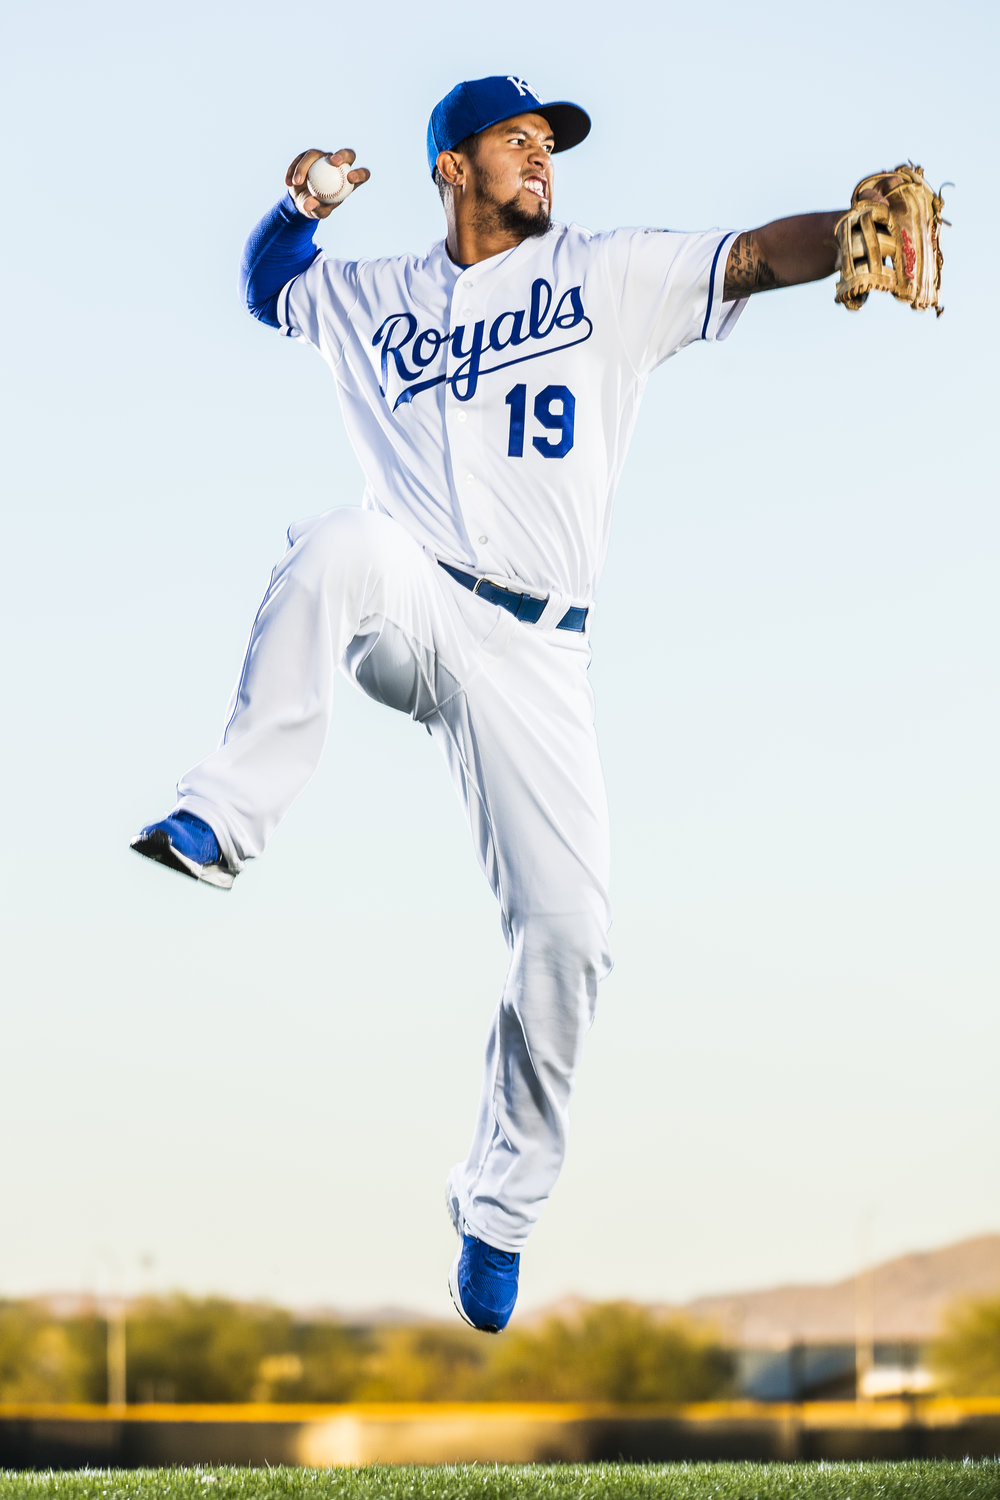 February 25, 2016: Infielder Cuthbert #19 poses for a portrait during the Kansas City Royals photo day in Surprise, Ariz. (Photo by Ric Tapia/Icon Sportswire)